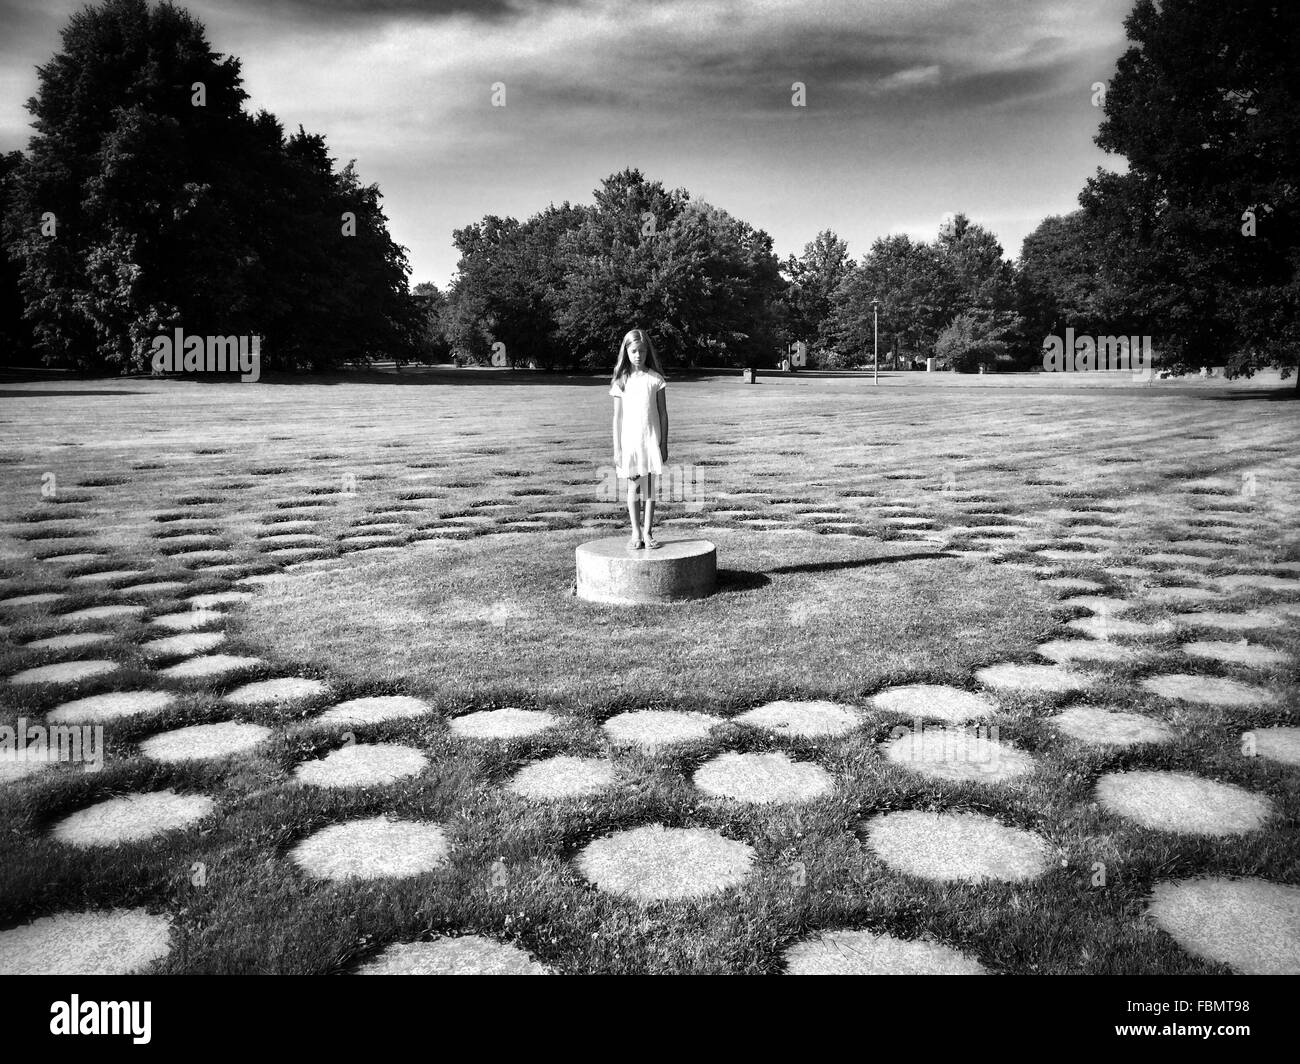 Full Length Of Woman Standing In Park - Stock Image